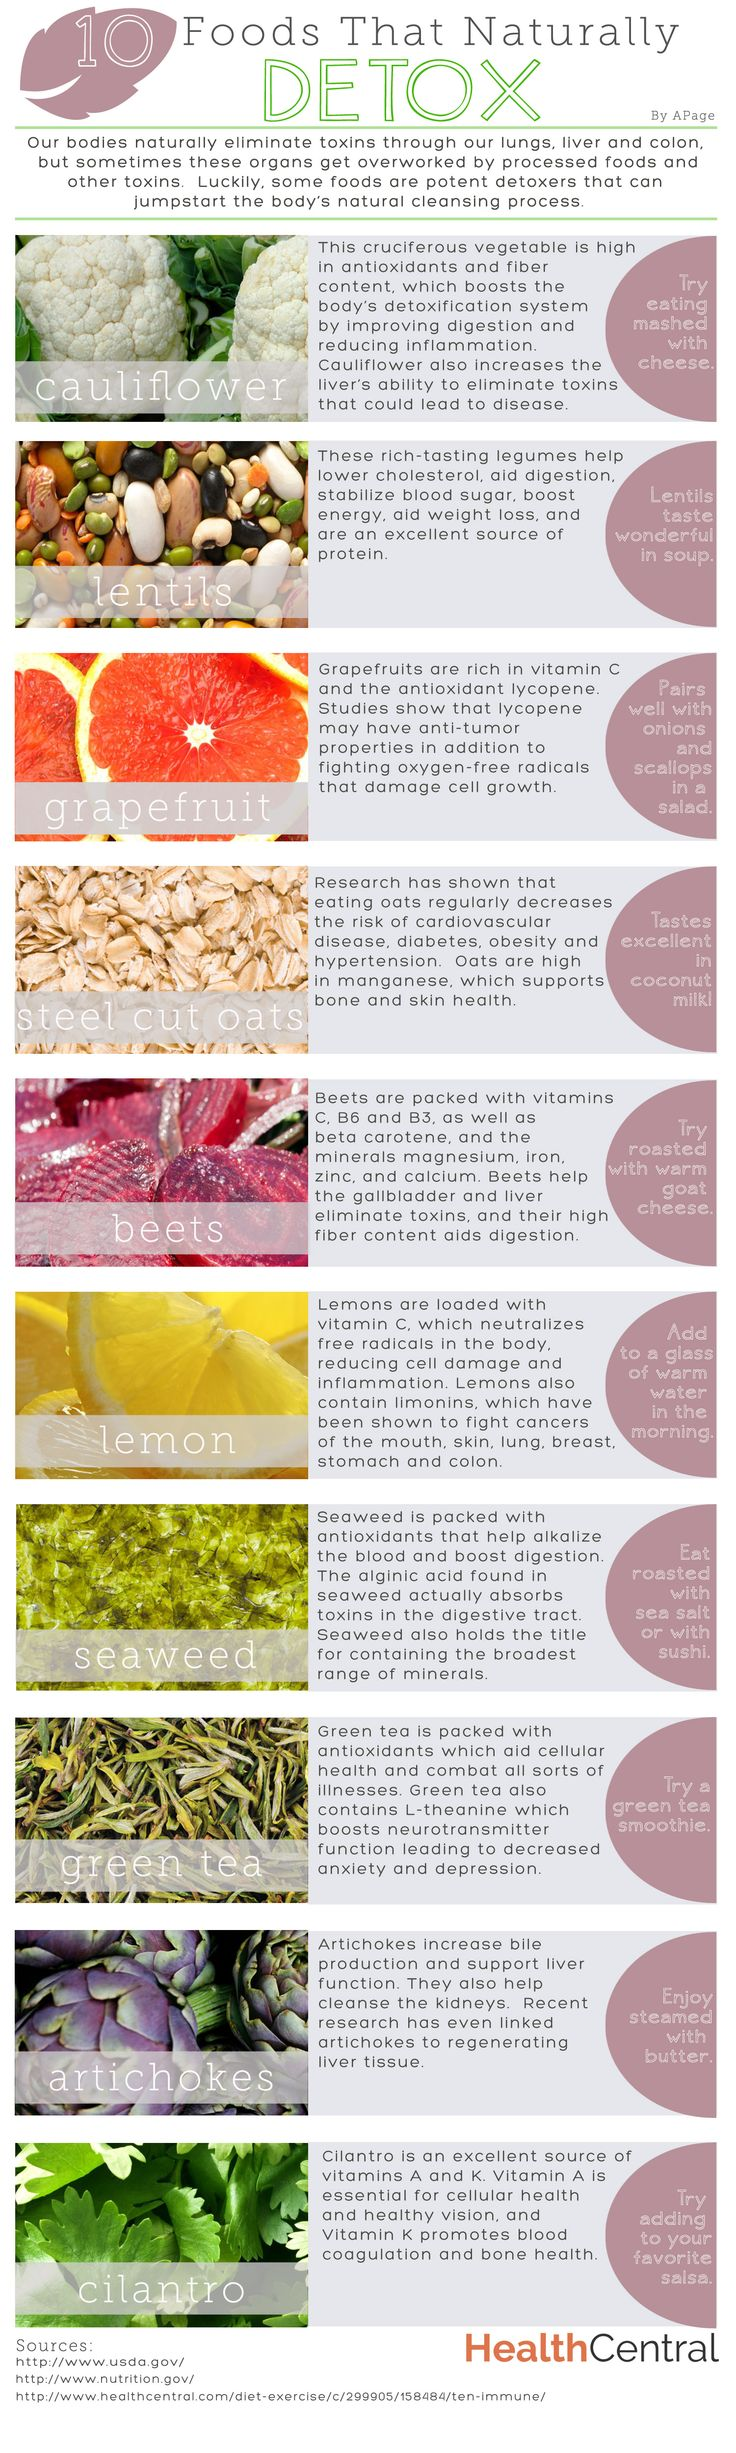 10 Foods That Naturally Detox